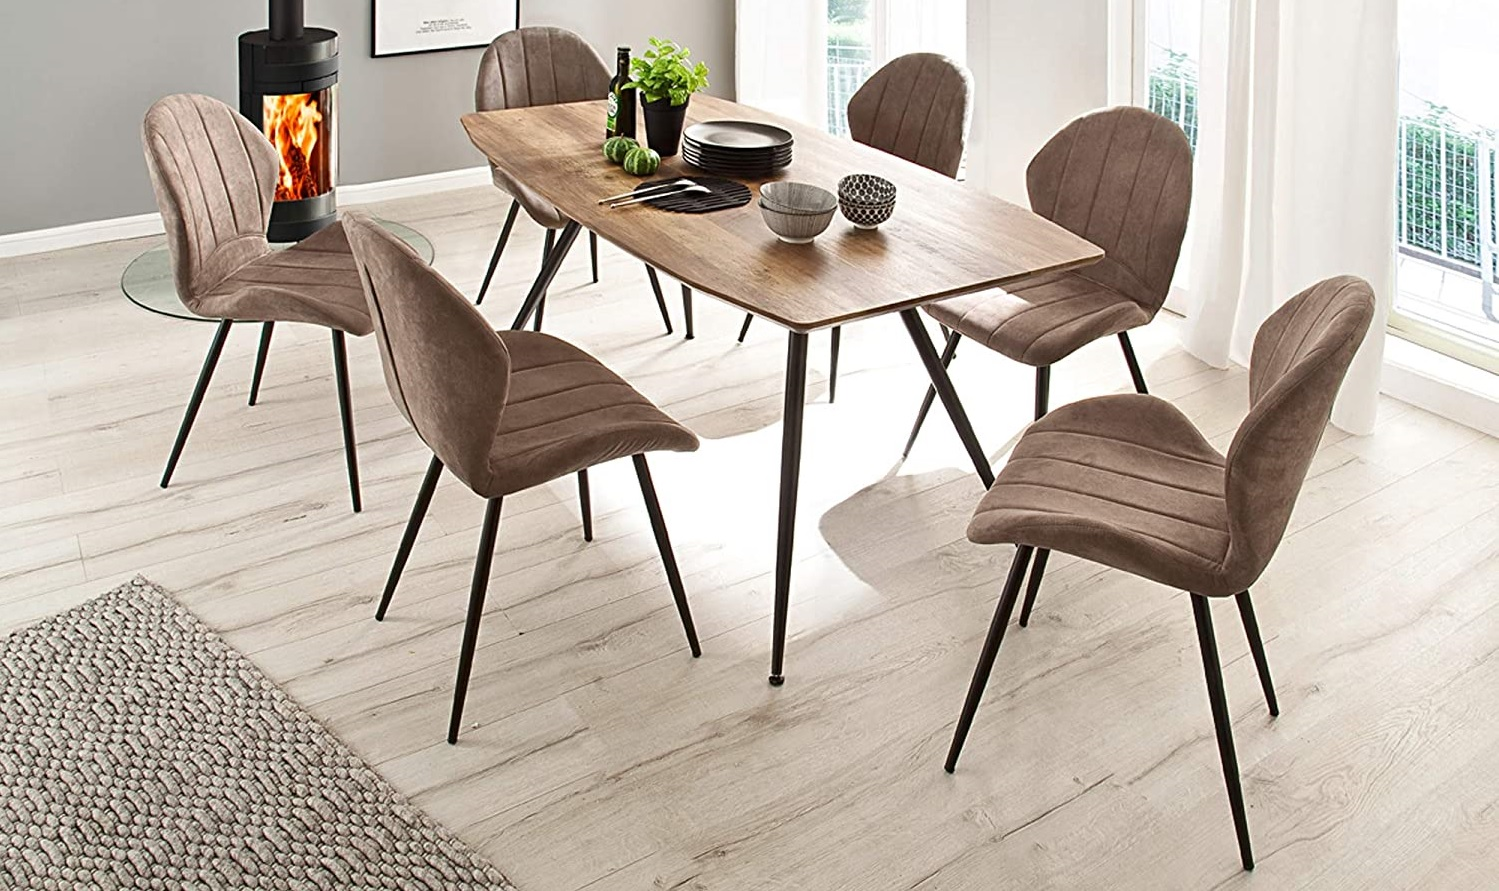 Top 10 Brands to Buy Dining Table and Chairs Online & Instore